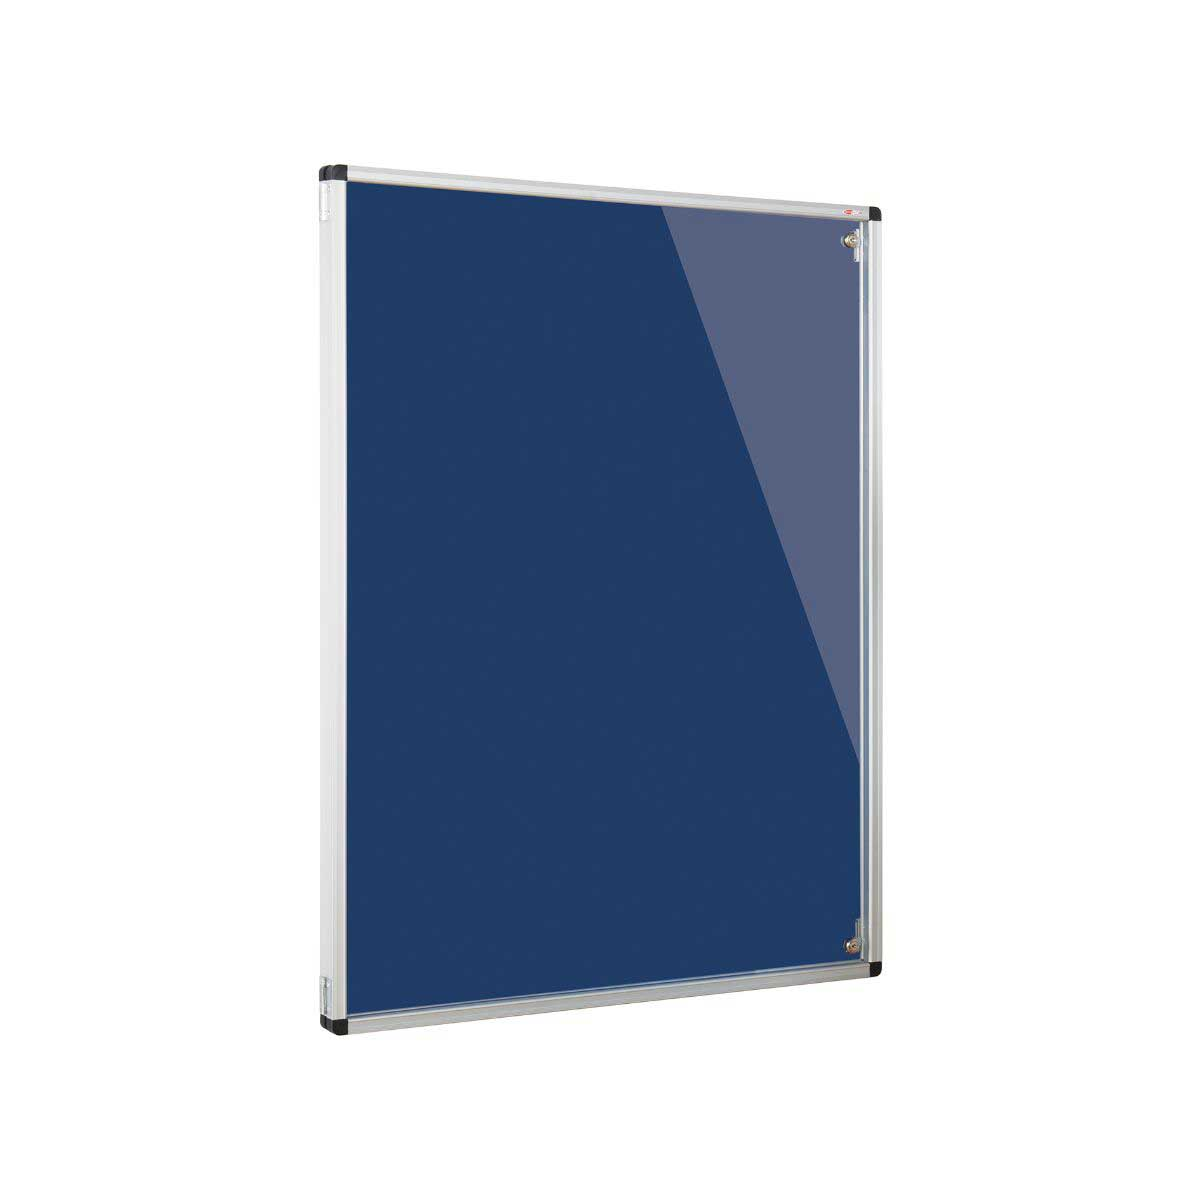 Resist-a-Flame Noticeboard 1200mm x 1200mm.